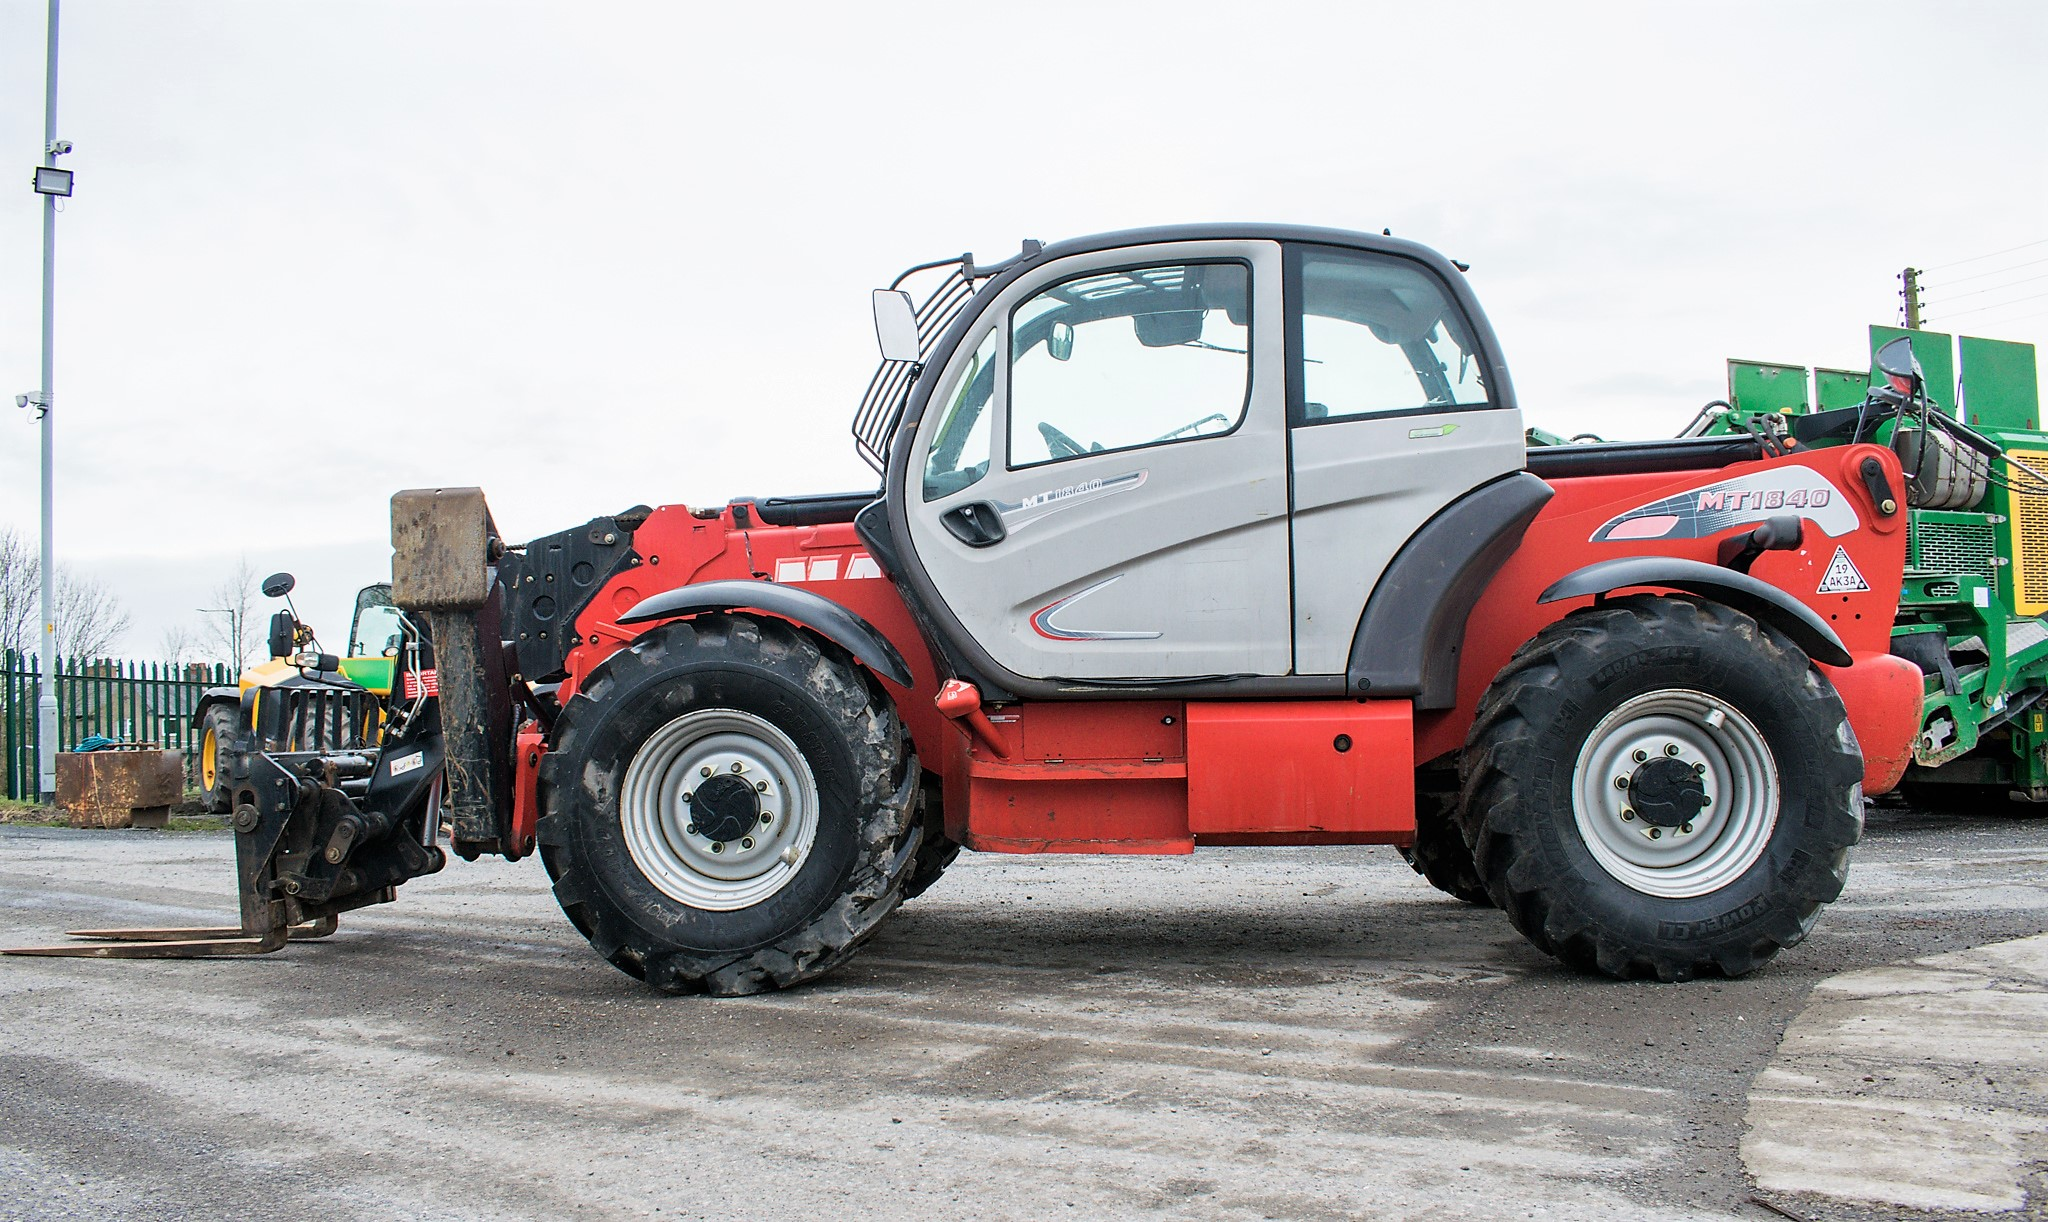 Manitou MT1840 18 metre telescopic handler Year: 2014 S/N: 942628 Recorded Hours: 4160 c/w sway - Image 7 of 22